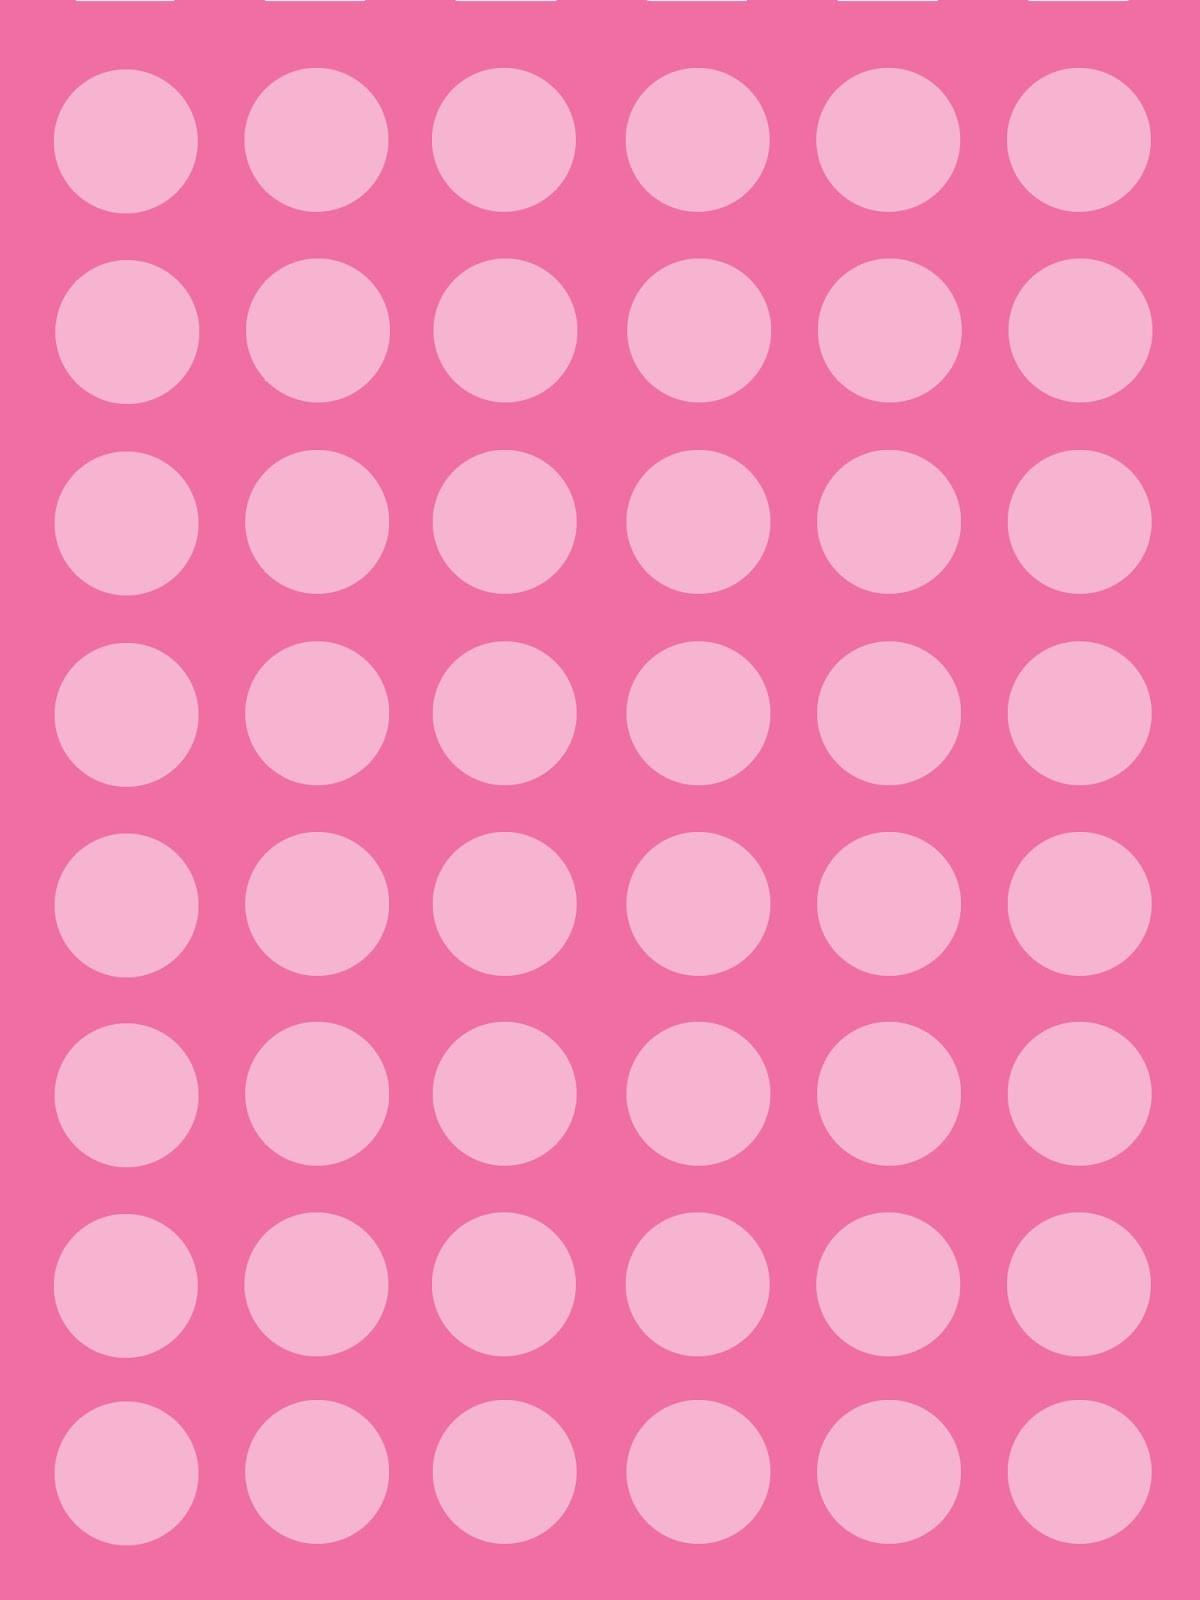 Pink Polka Dot Wallpapersafari